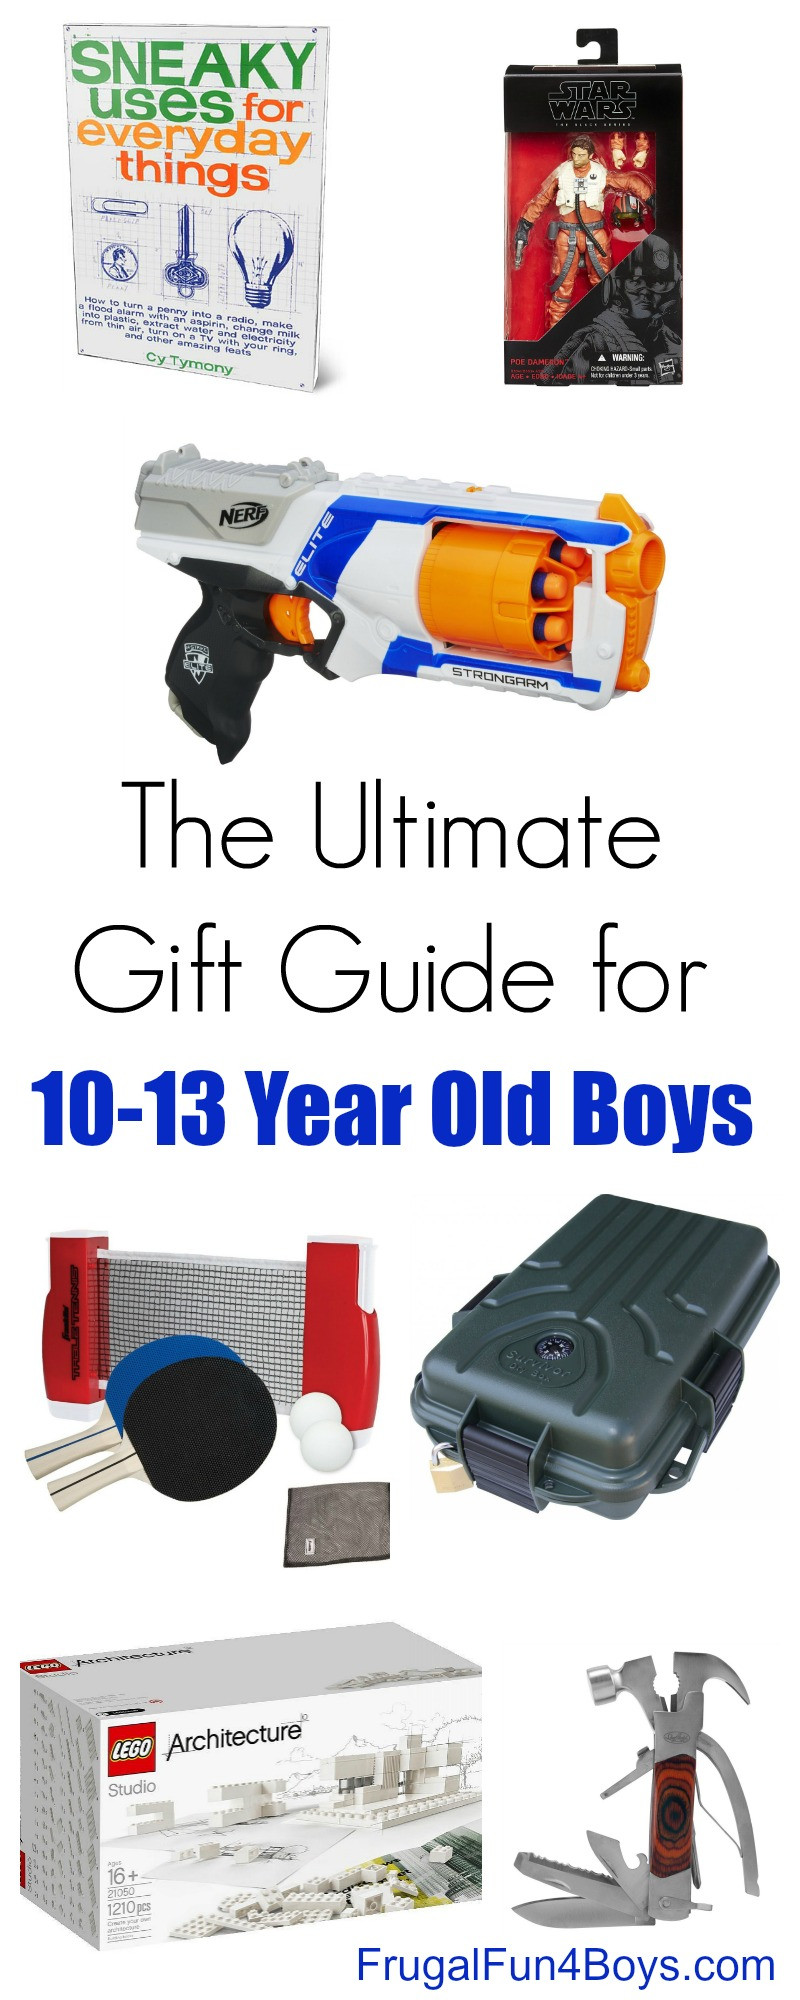 Best ideas about Christmas Gift Ideas For 13 Yr Old Boys . Save or Pin Gift Ideas for 10 to 13 Year Old Boys Now.